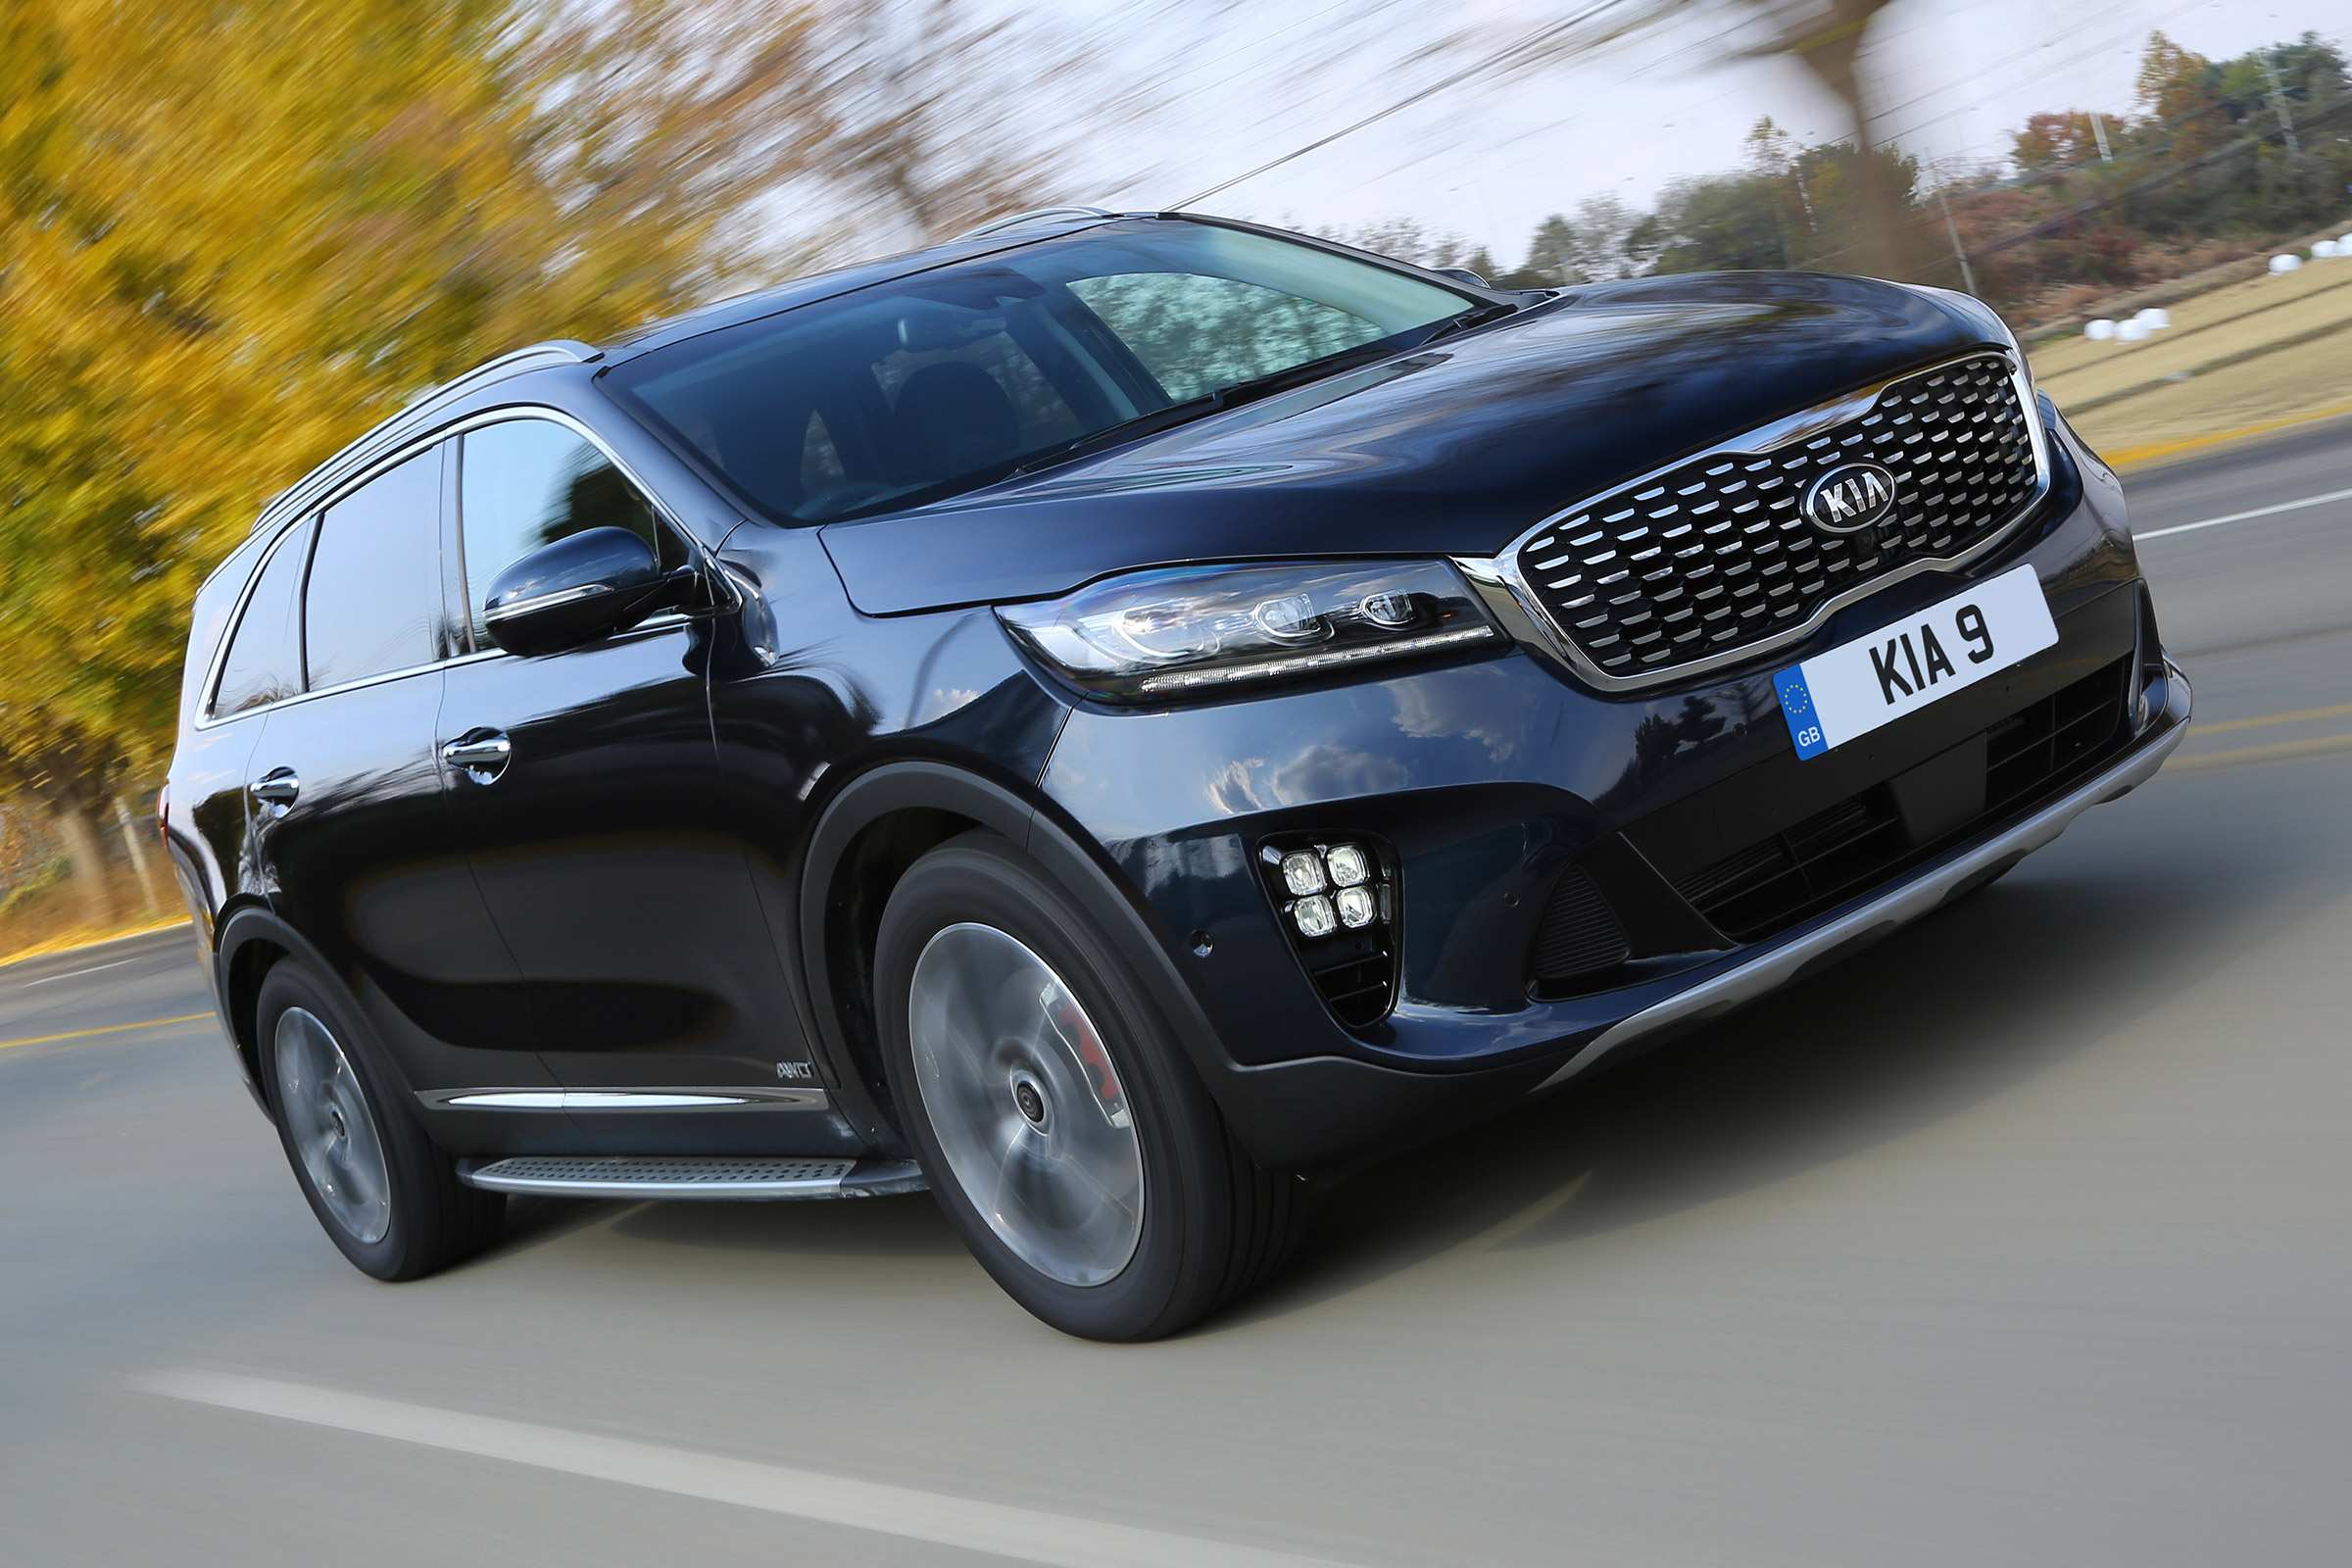 57 All New Kia Sorento 2020 Gt Line Spy Shoot for Kia Sorento 2020 Gt Line